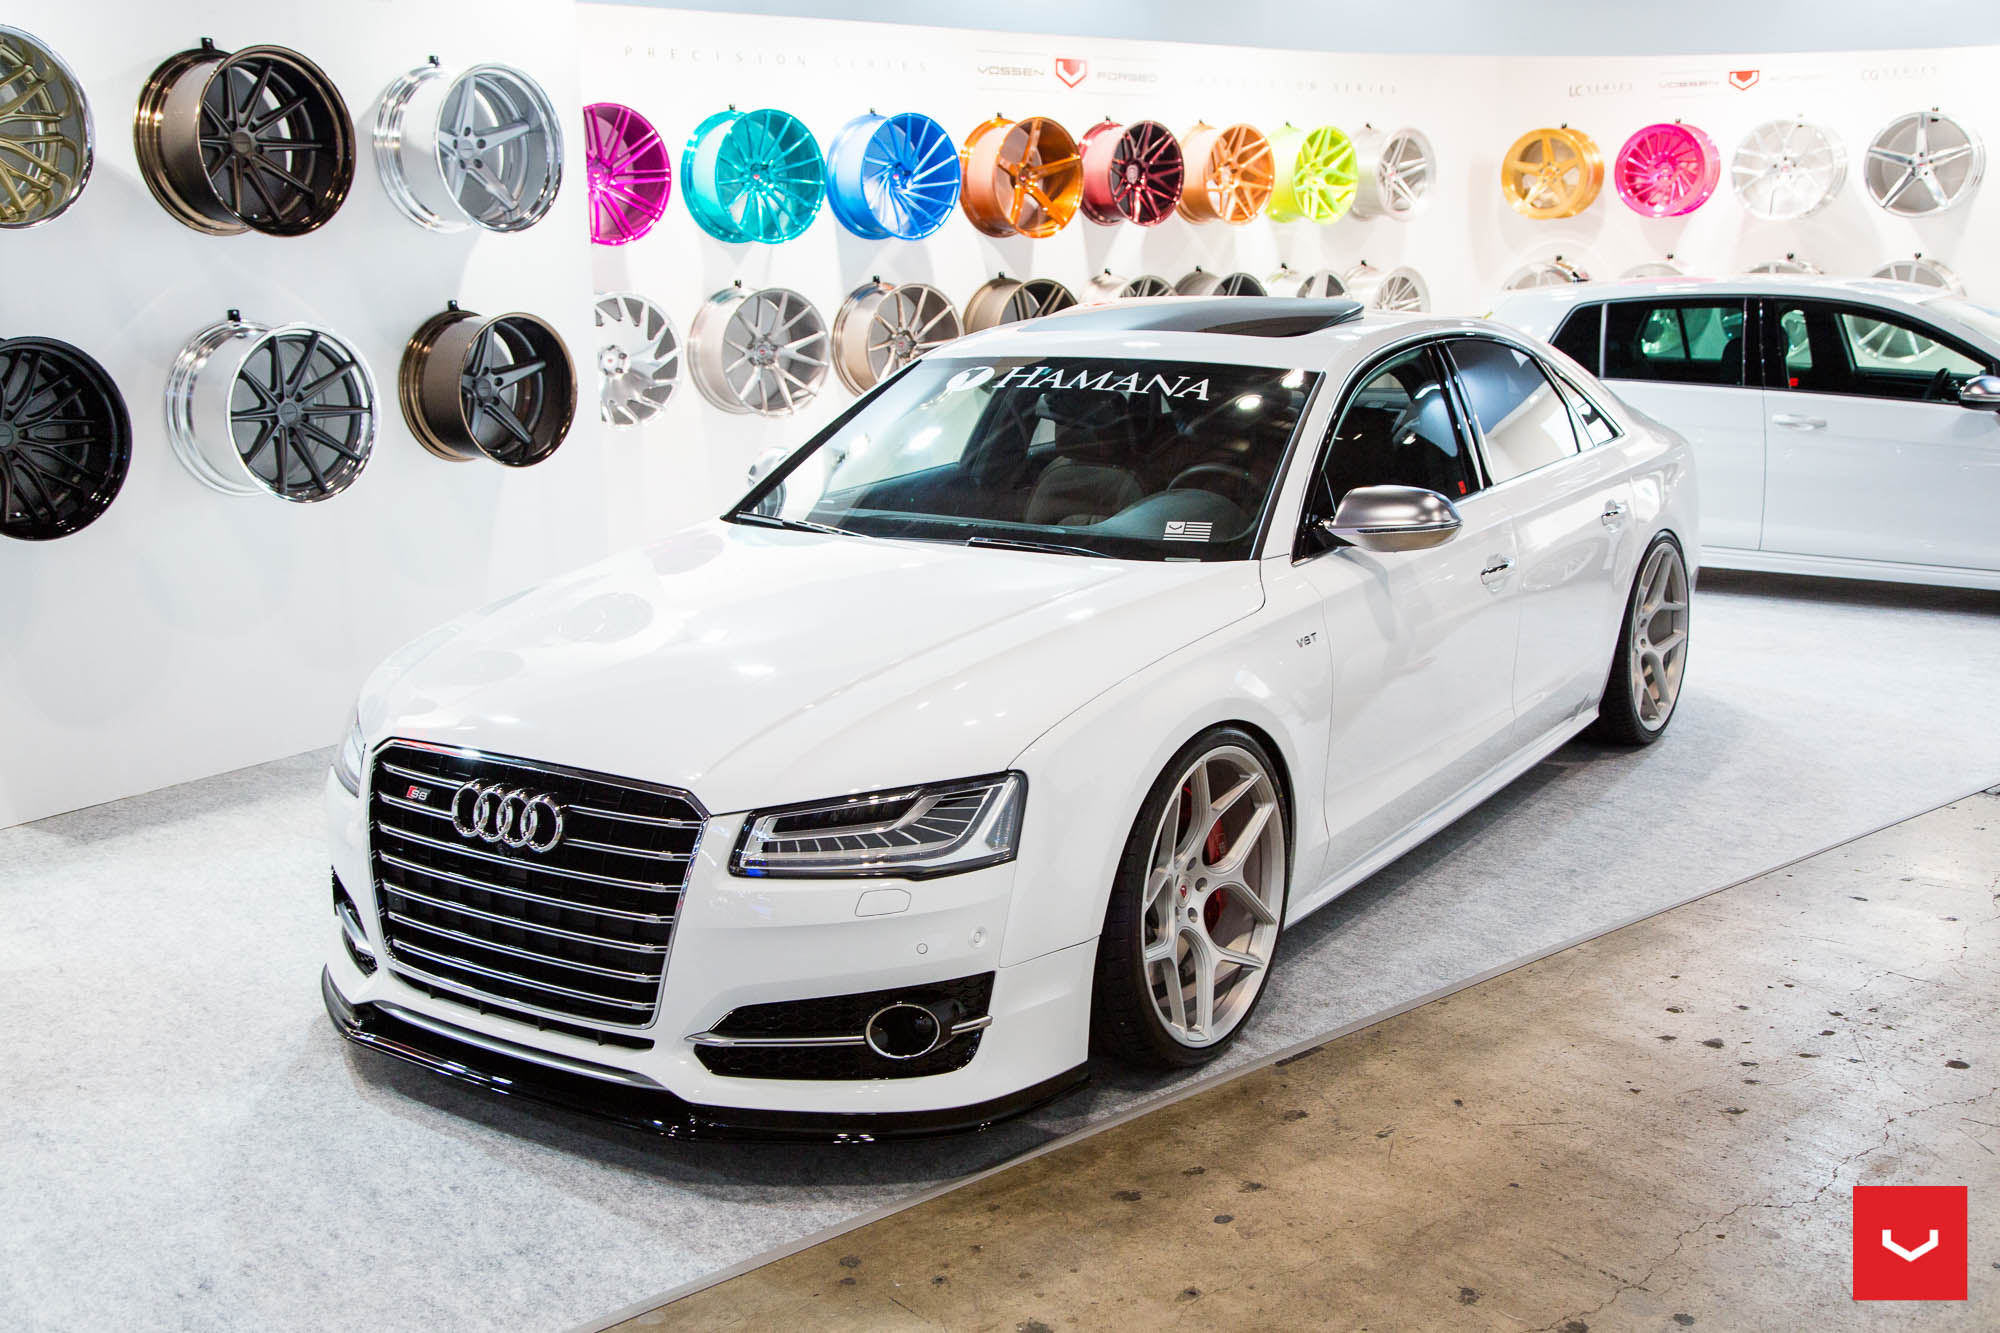 Golf R Audi S8 And Amg Gt Get Widebody Hamana Kits And